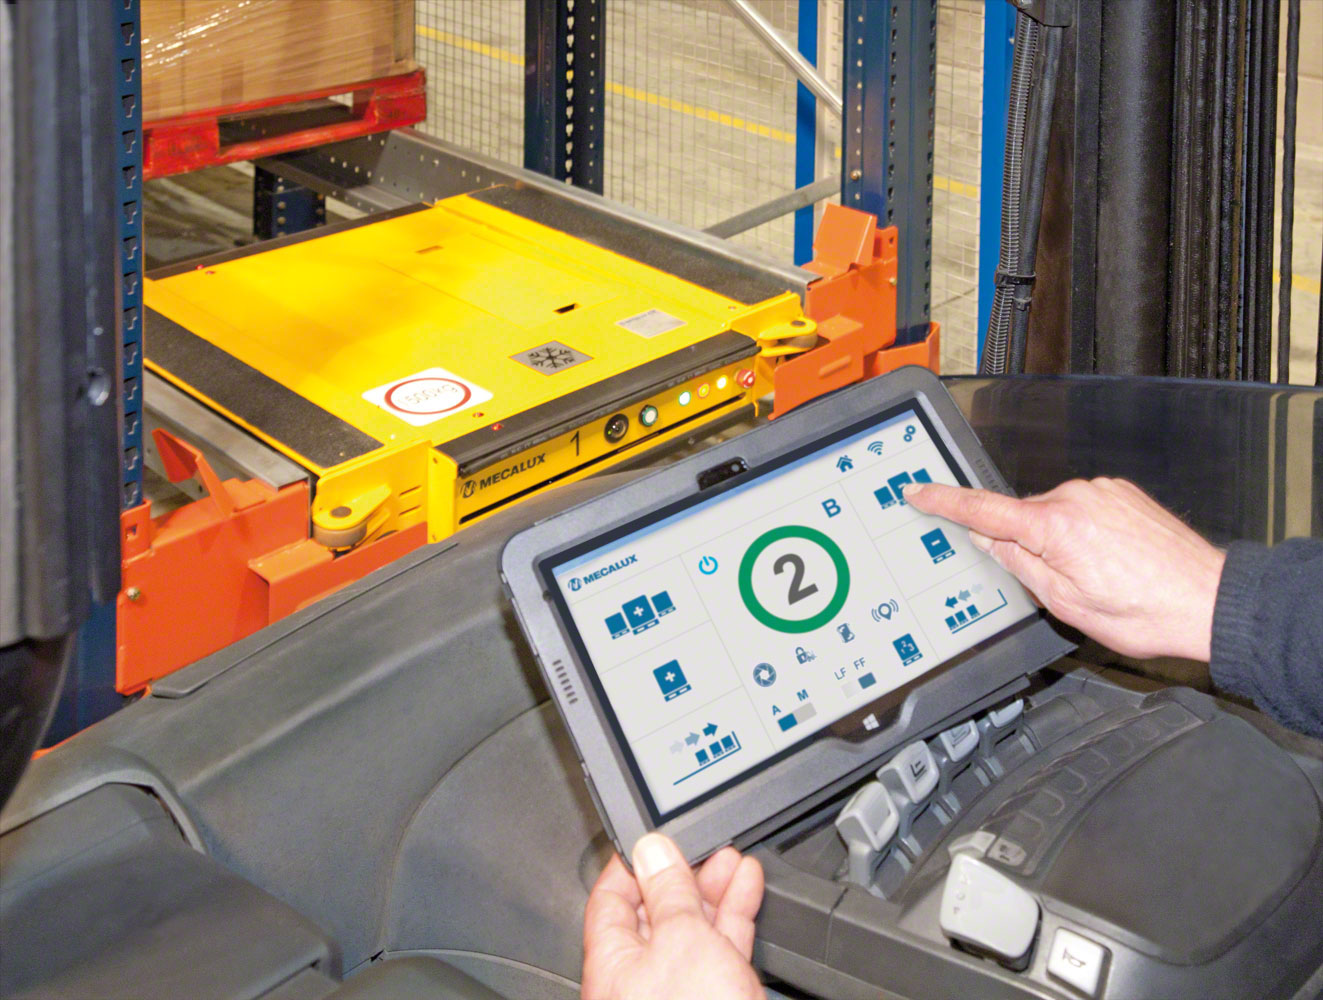 The WiFi control tablet has a very intuitive user interface